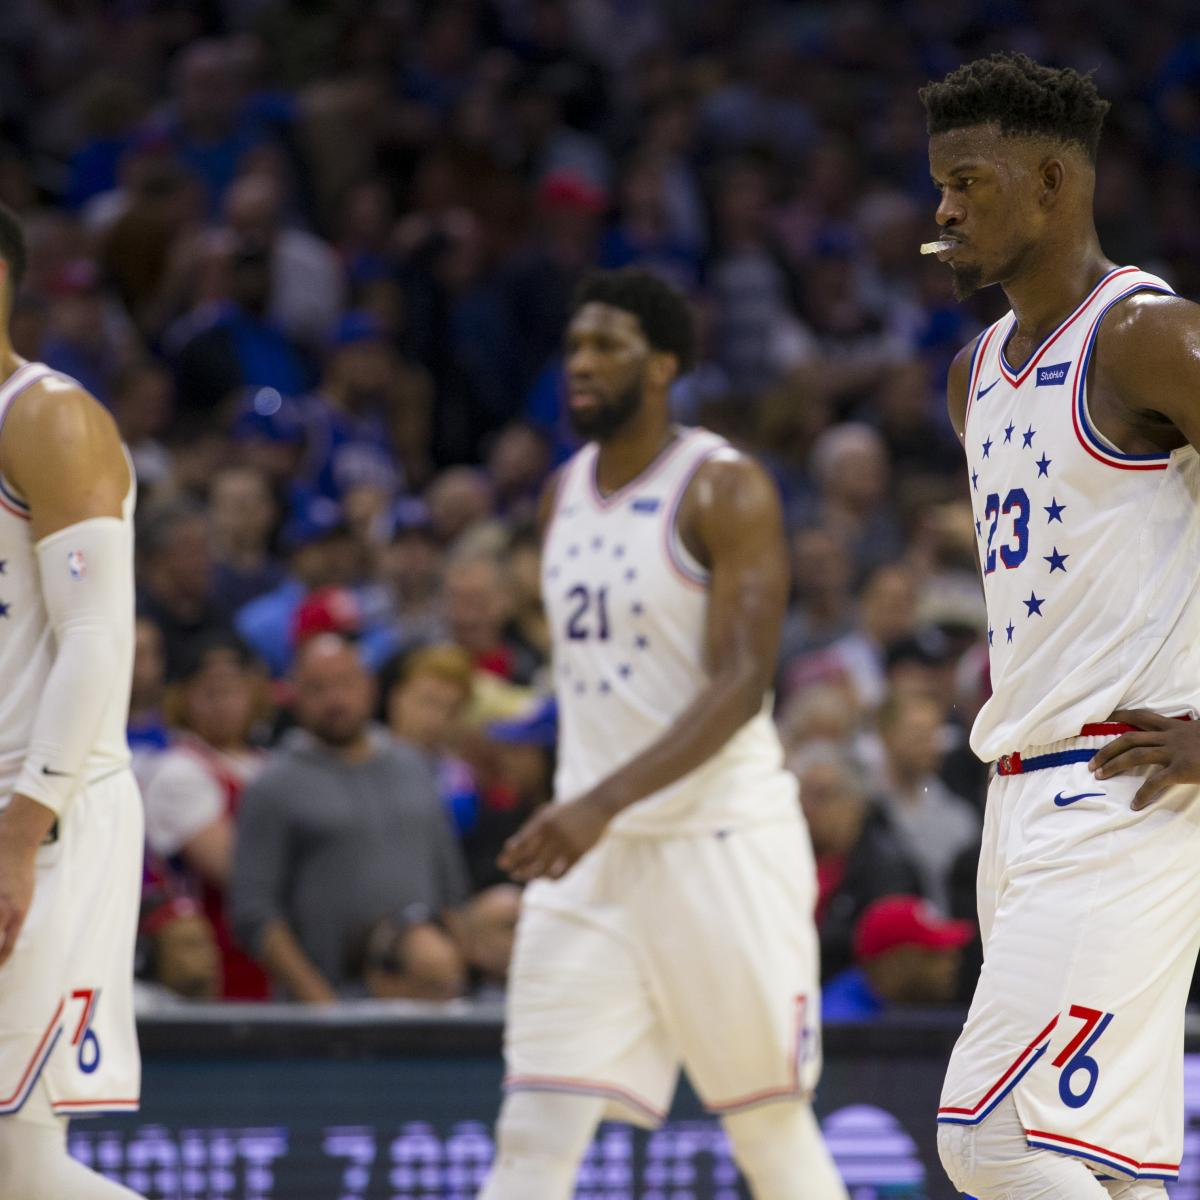 The Philadelphia 76ers players were emotional after their Game 7 loss to the Toronto Raptors , but Jimmy Butler still showed a lot of support to his teammates. The wing had high praise when asked about Ben Simmons and Joel Embiid...